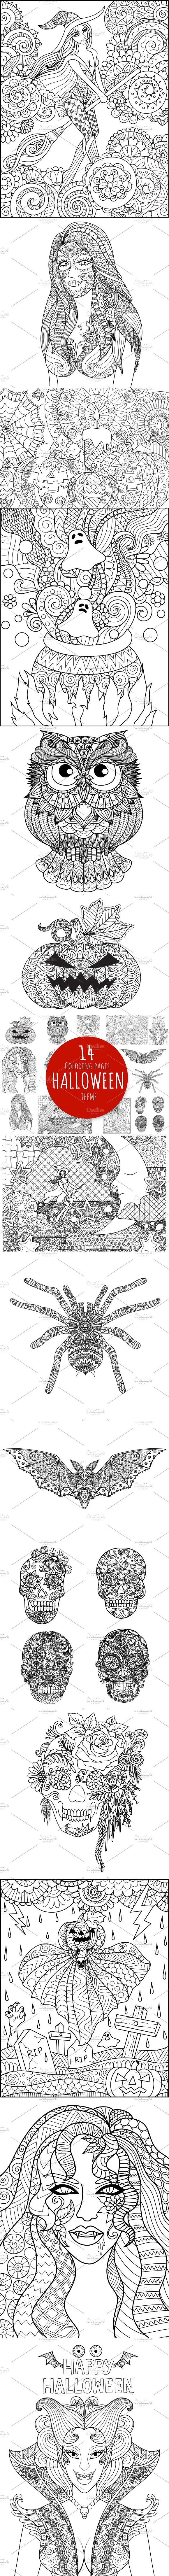 Halloween coloring pages Ghost Themes in Pinterest